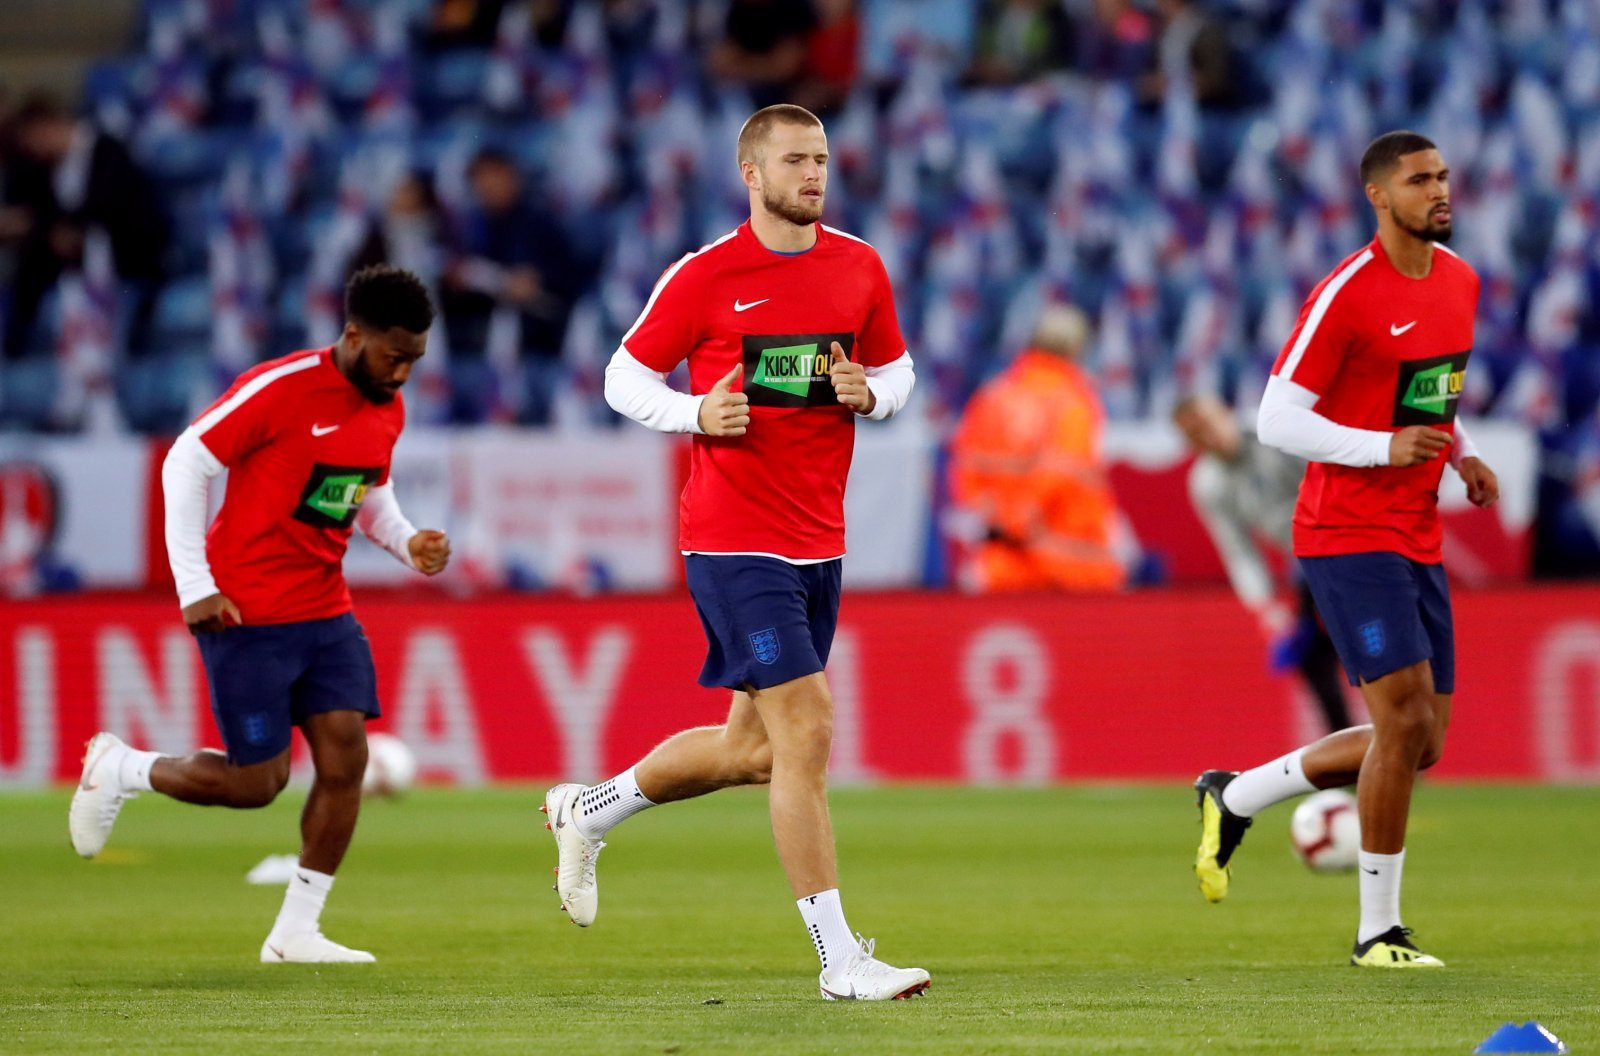 Eric Dier could be handed new Tottenham contract soon